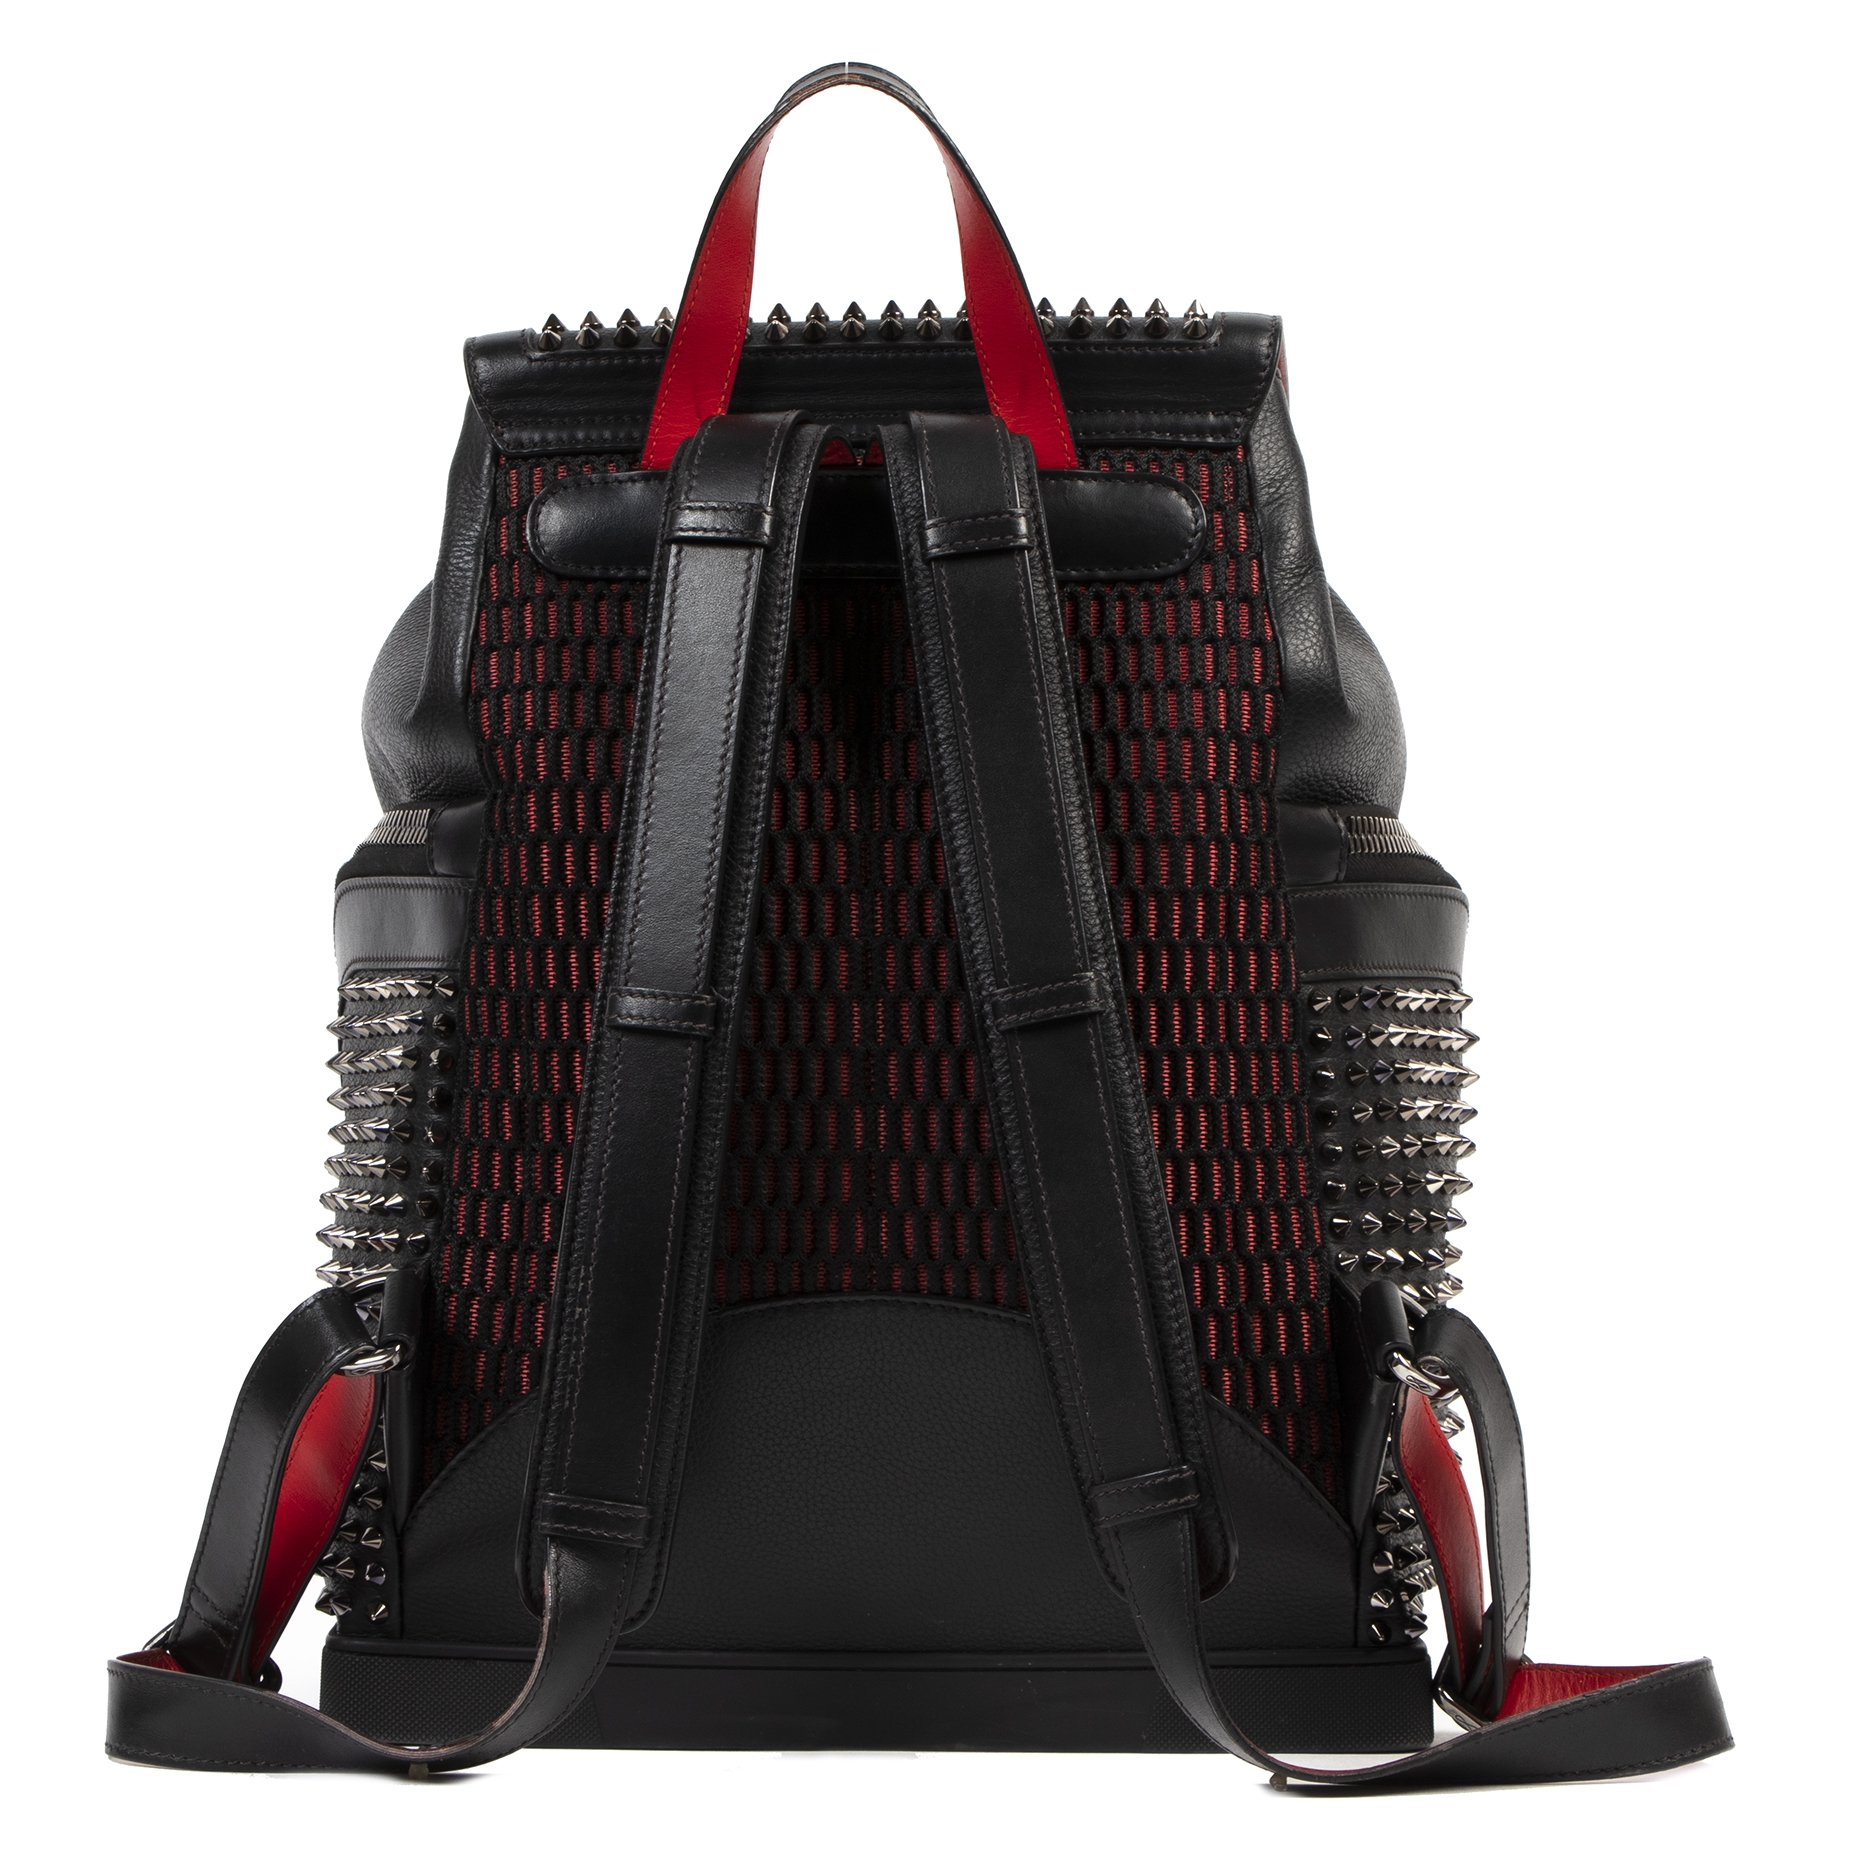 Authentic secondhand Christian Louboutin Spike Studs Explorer Backpack designer bags fashion luxury vintage webshop safe secure online shopping